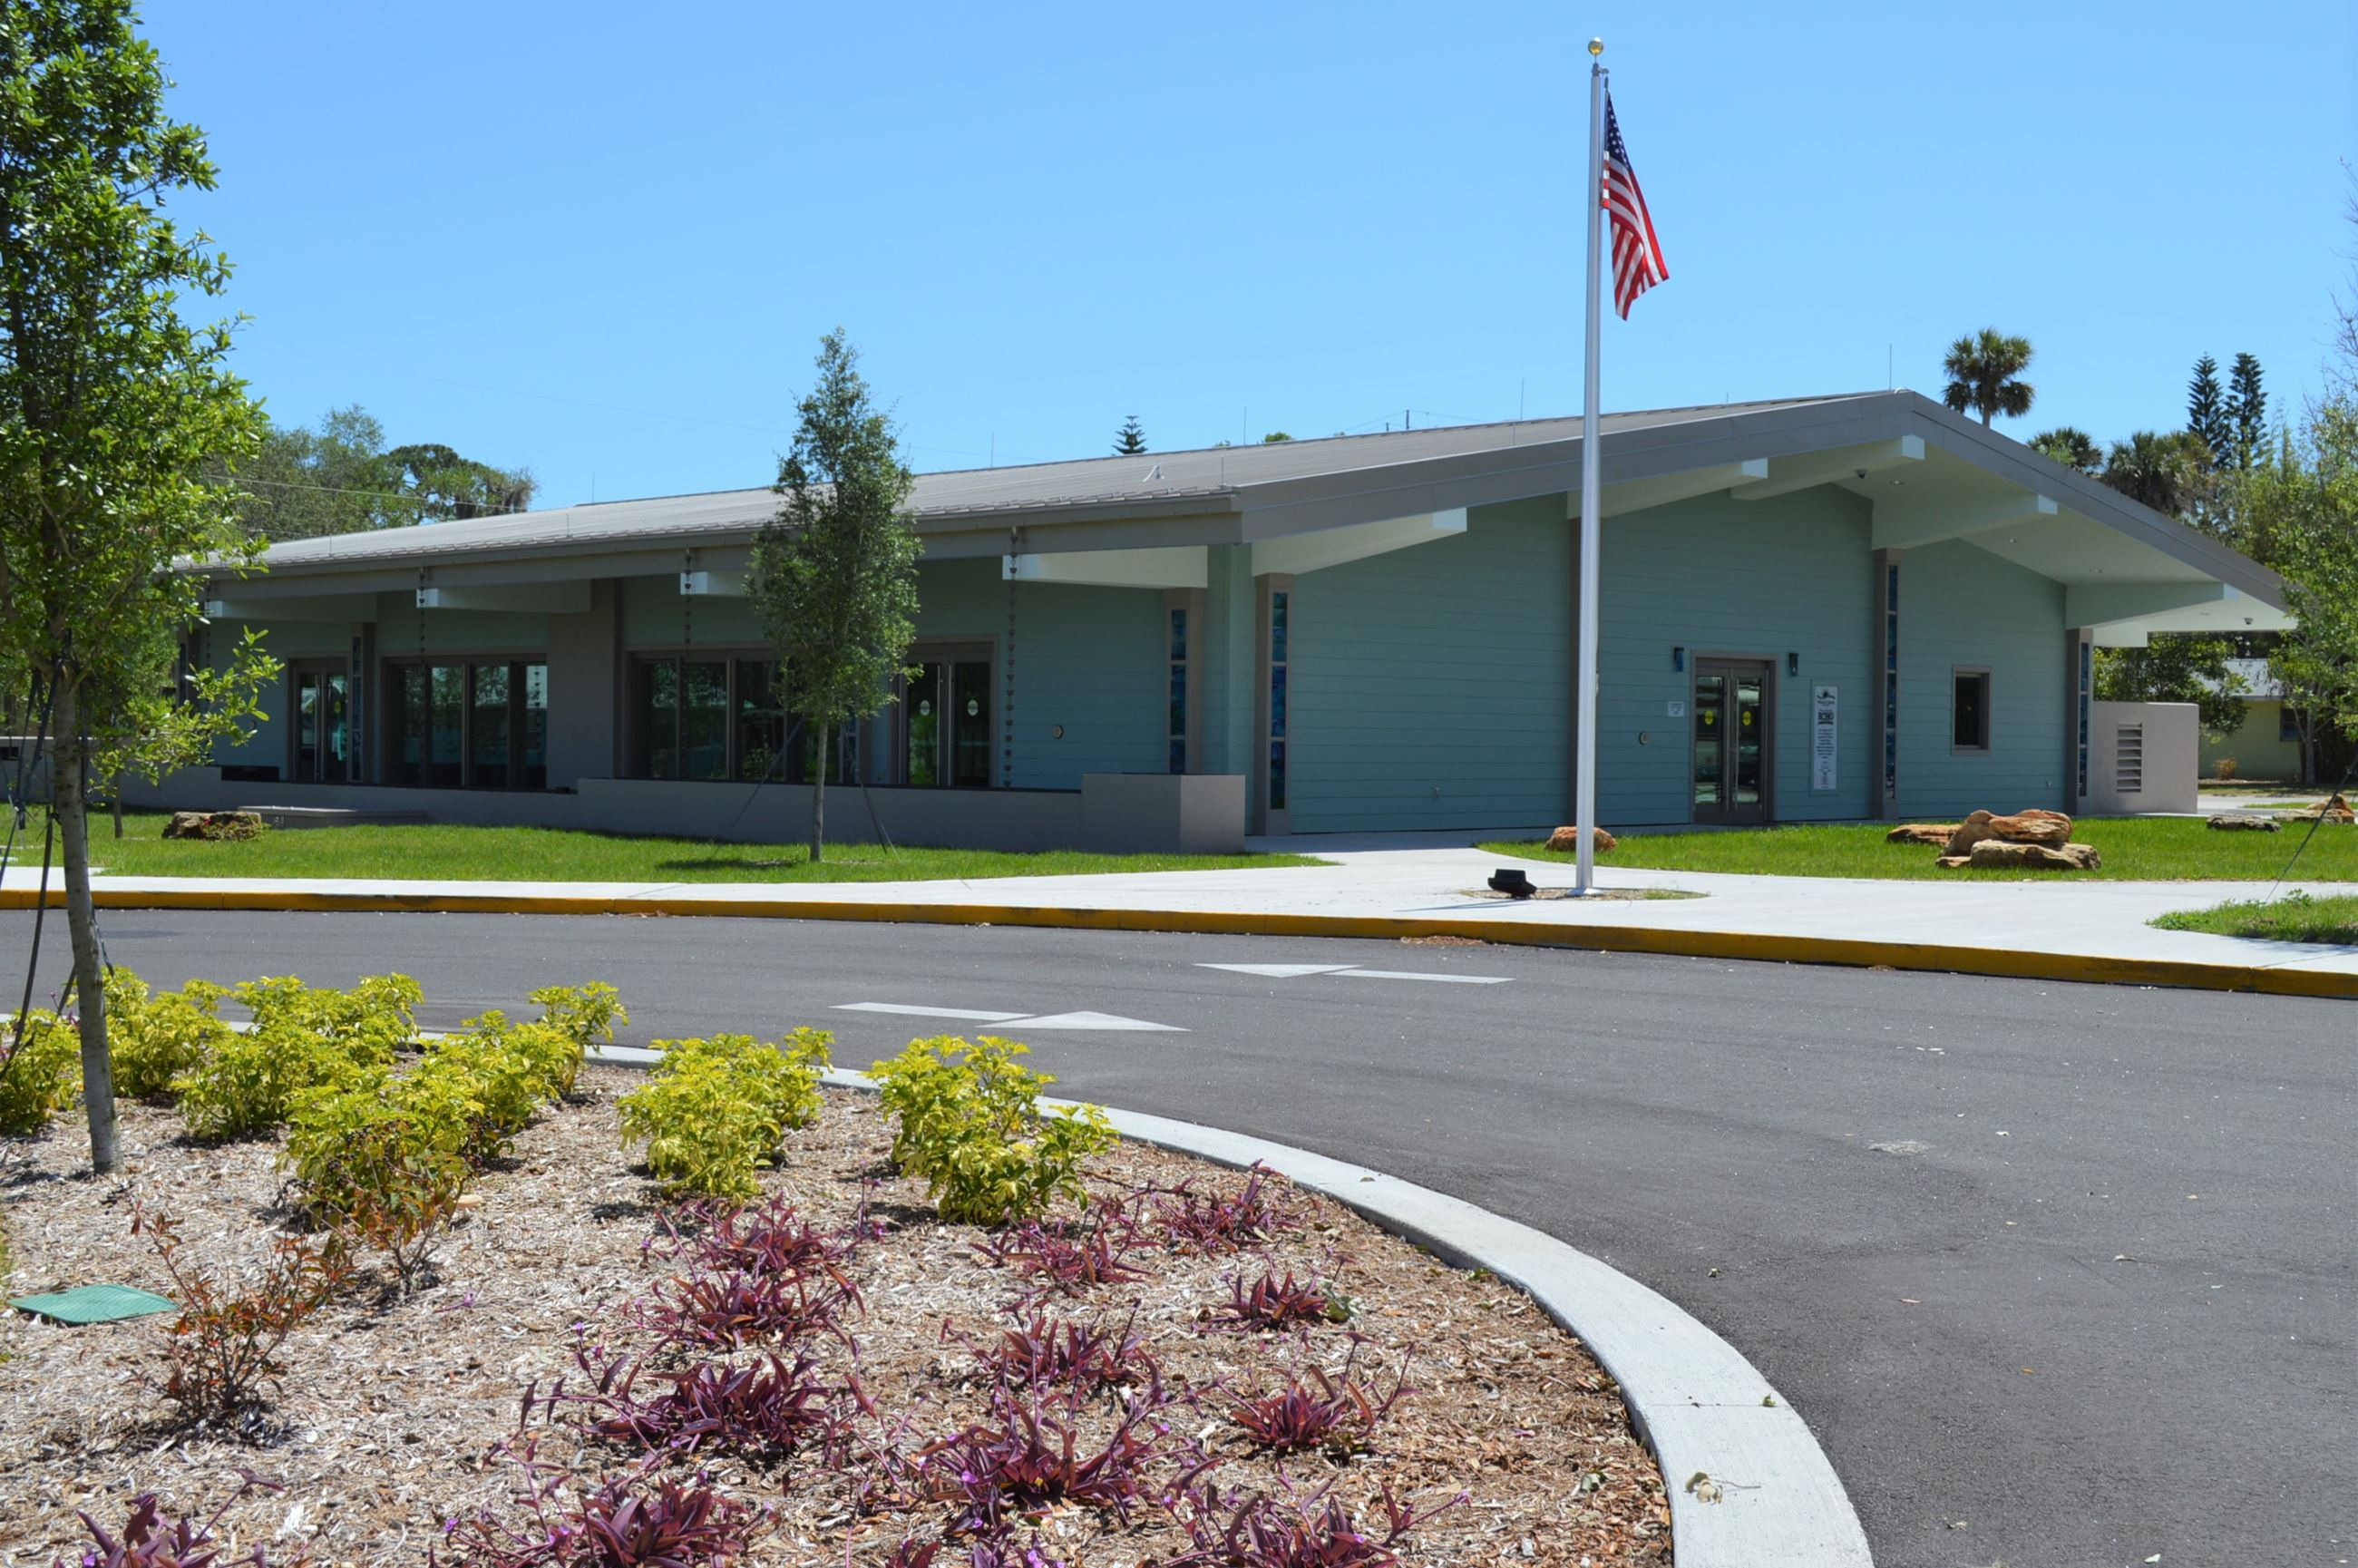 Photo of Live Oak Cultural Center exterior, single-story building with flagpole and landscaping